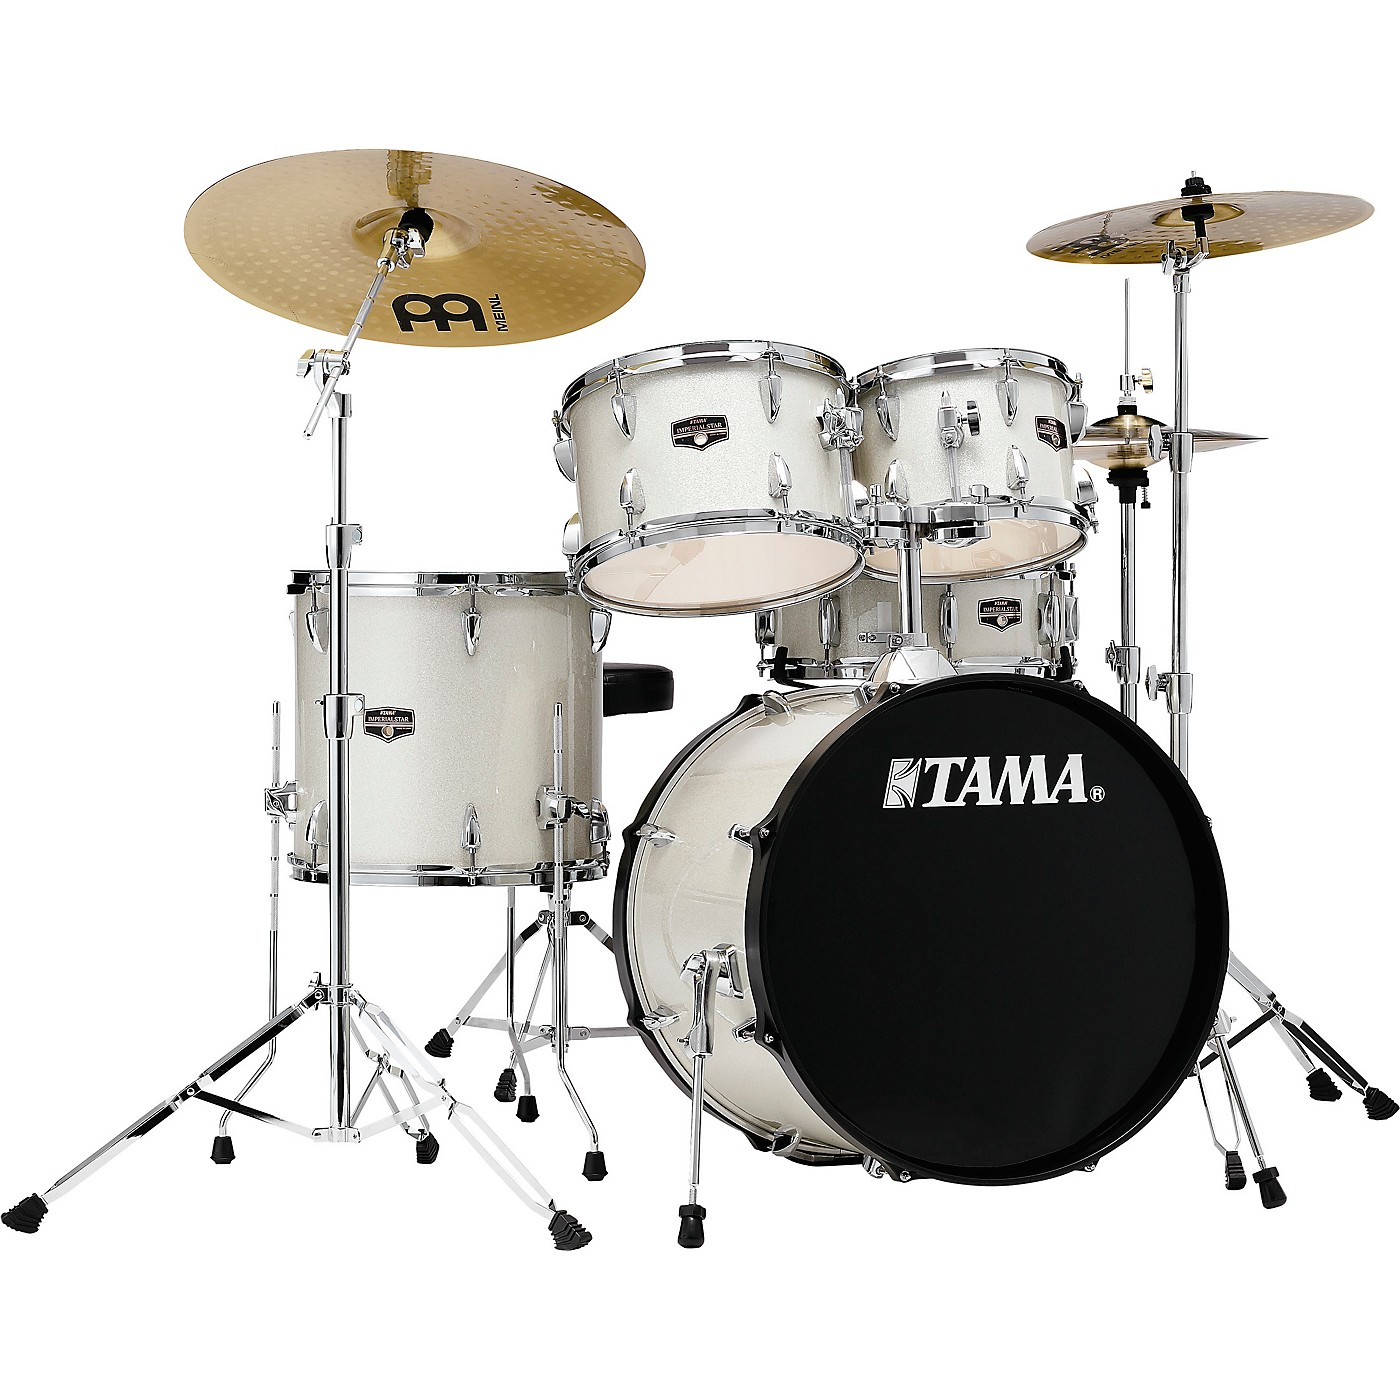 TAMA Imperialstar 5-Piece Complete Drum Set with Meinl HCS cymbals and 20 in. Bass Drum thumbnail